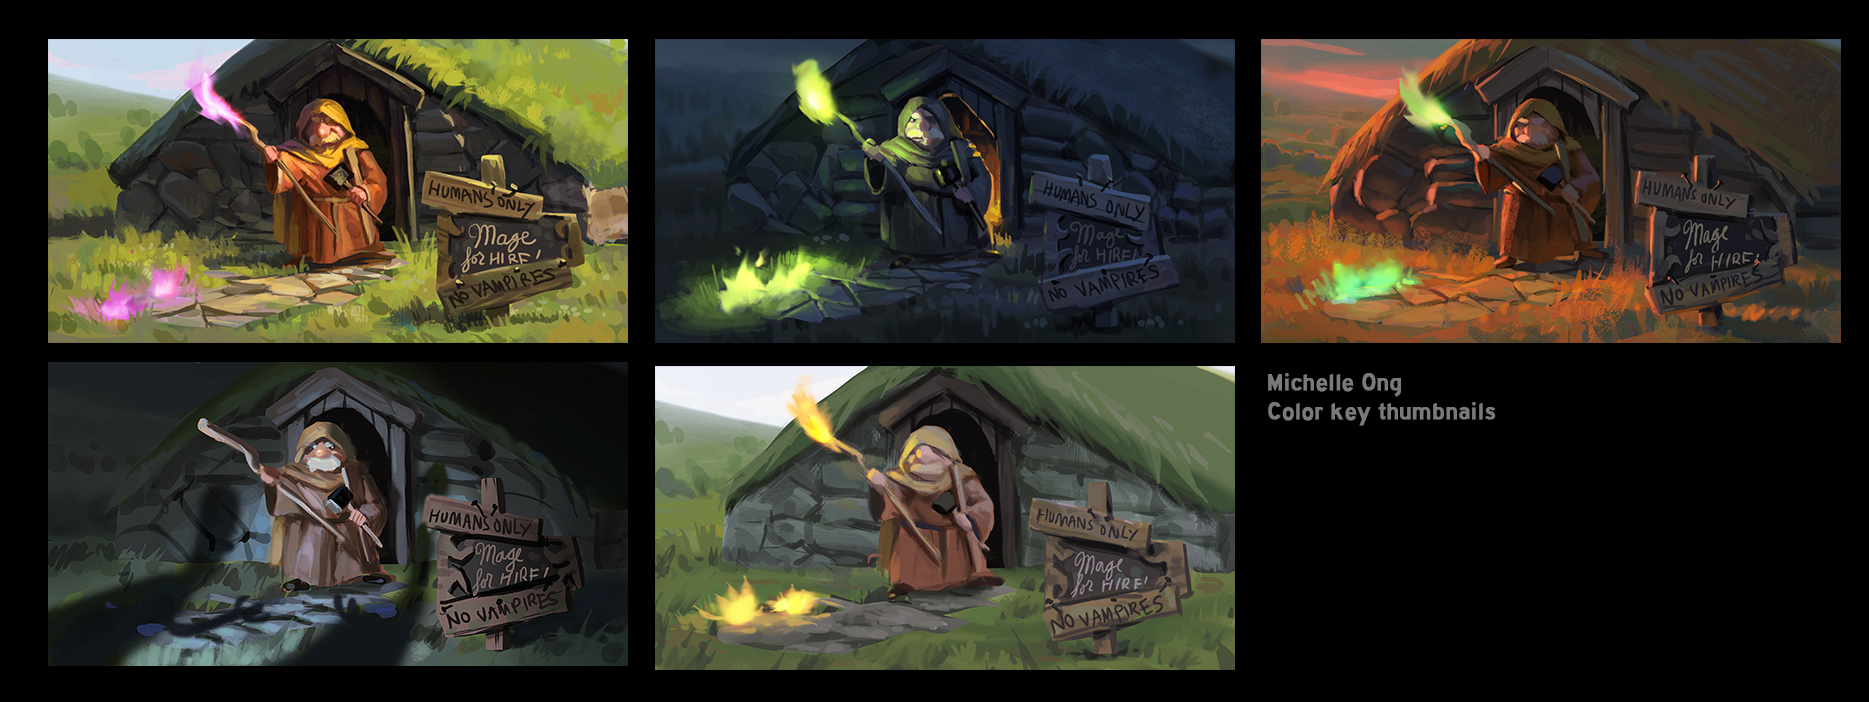 Color key thumbnails